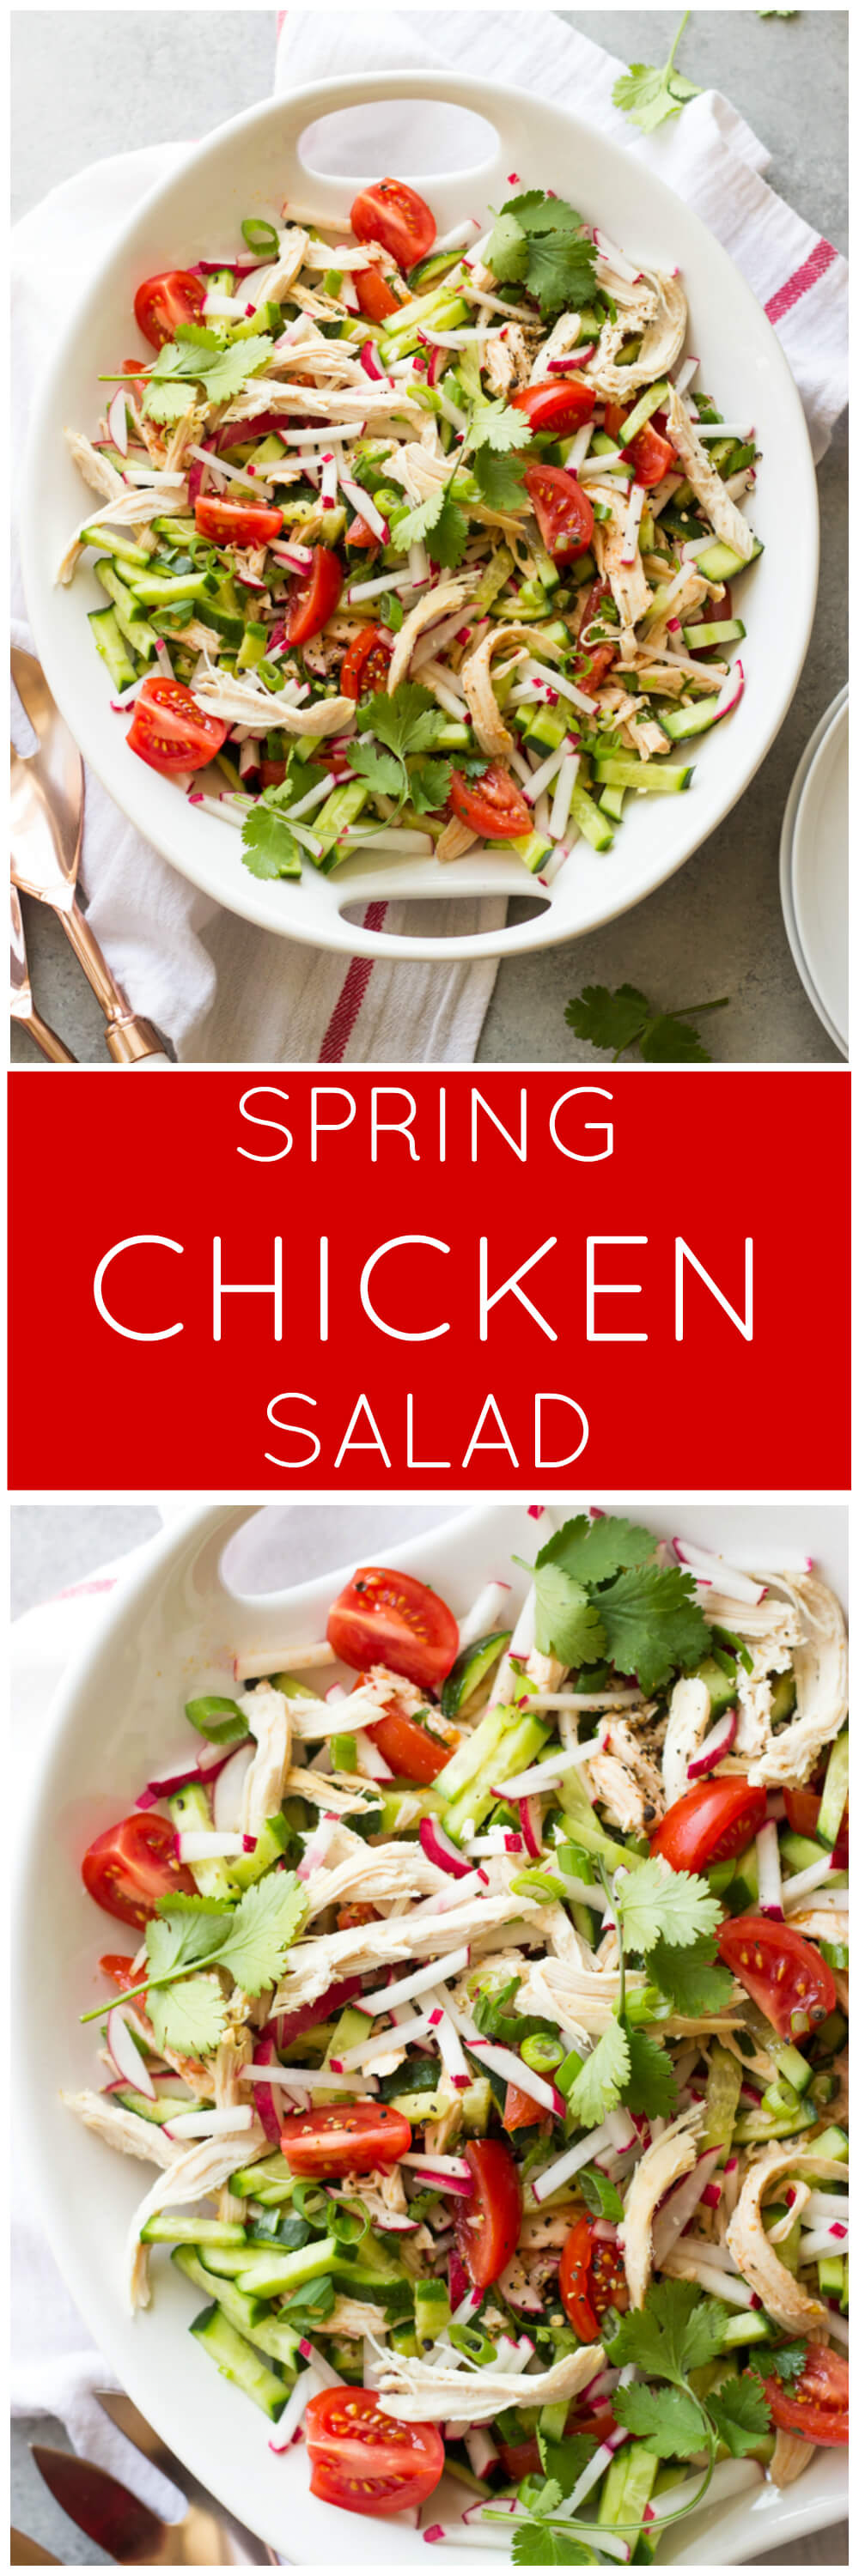 Spring Chicken Salad - simple fresh ingredients tossed in a zesty vinaigrette | littlebroken.com @littlebroken